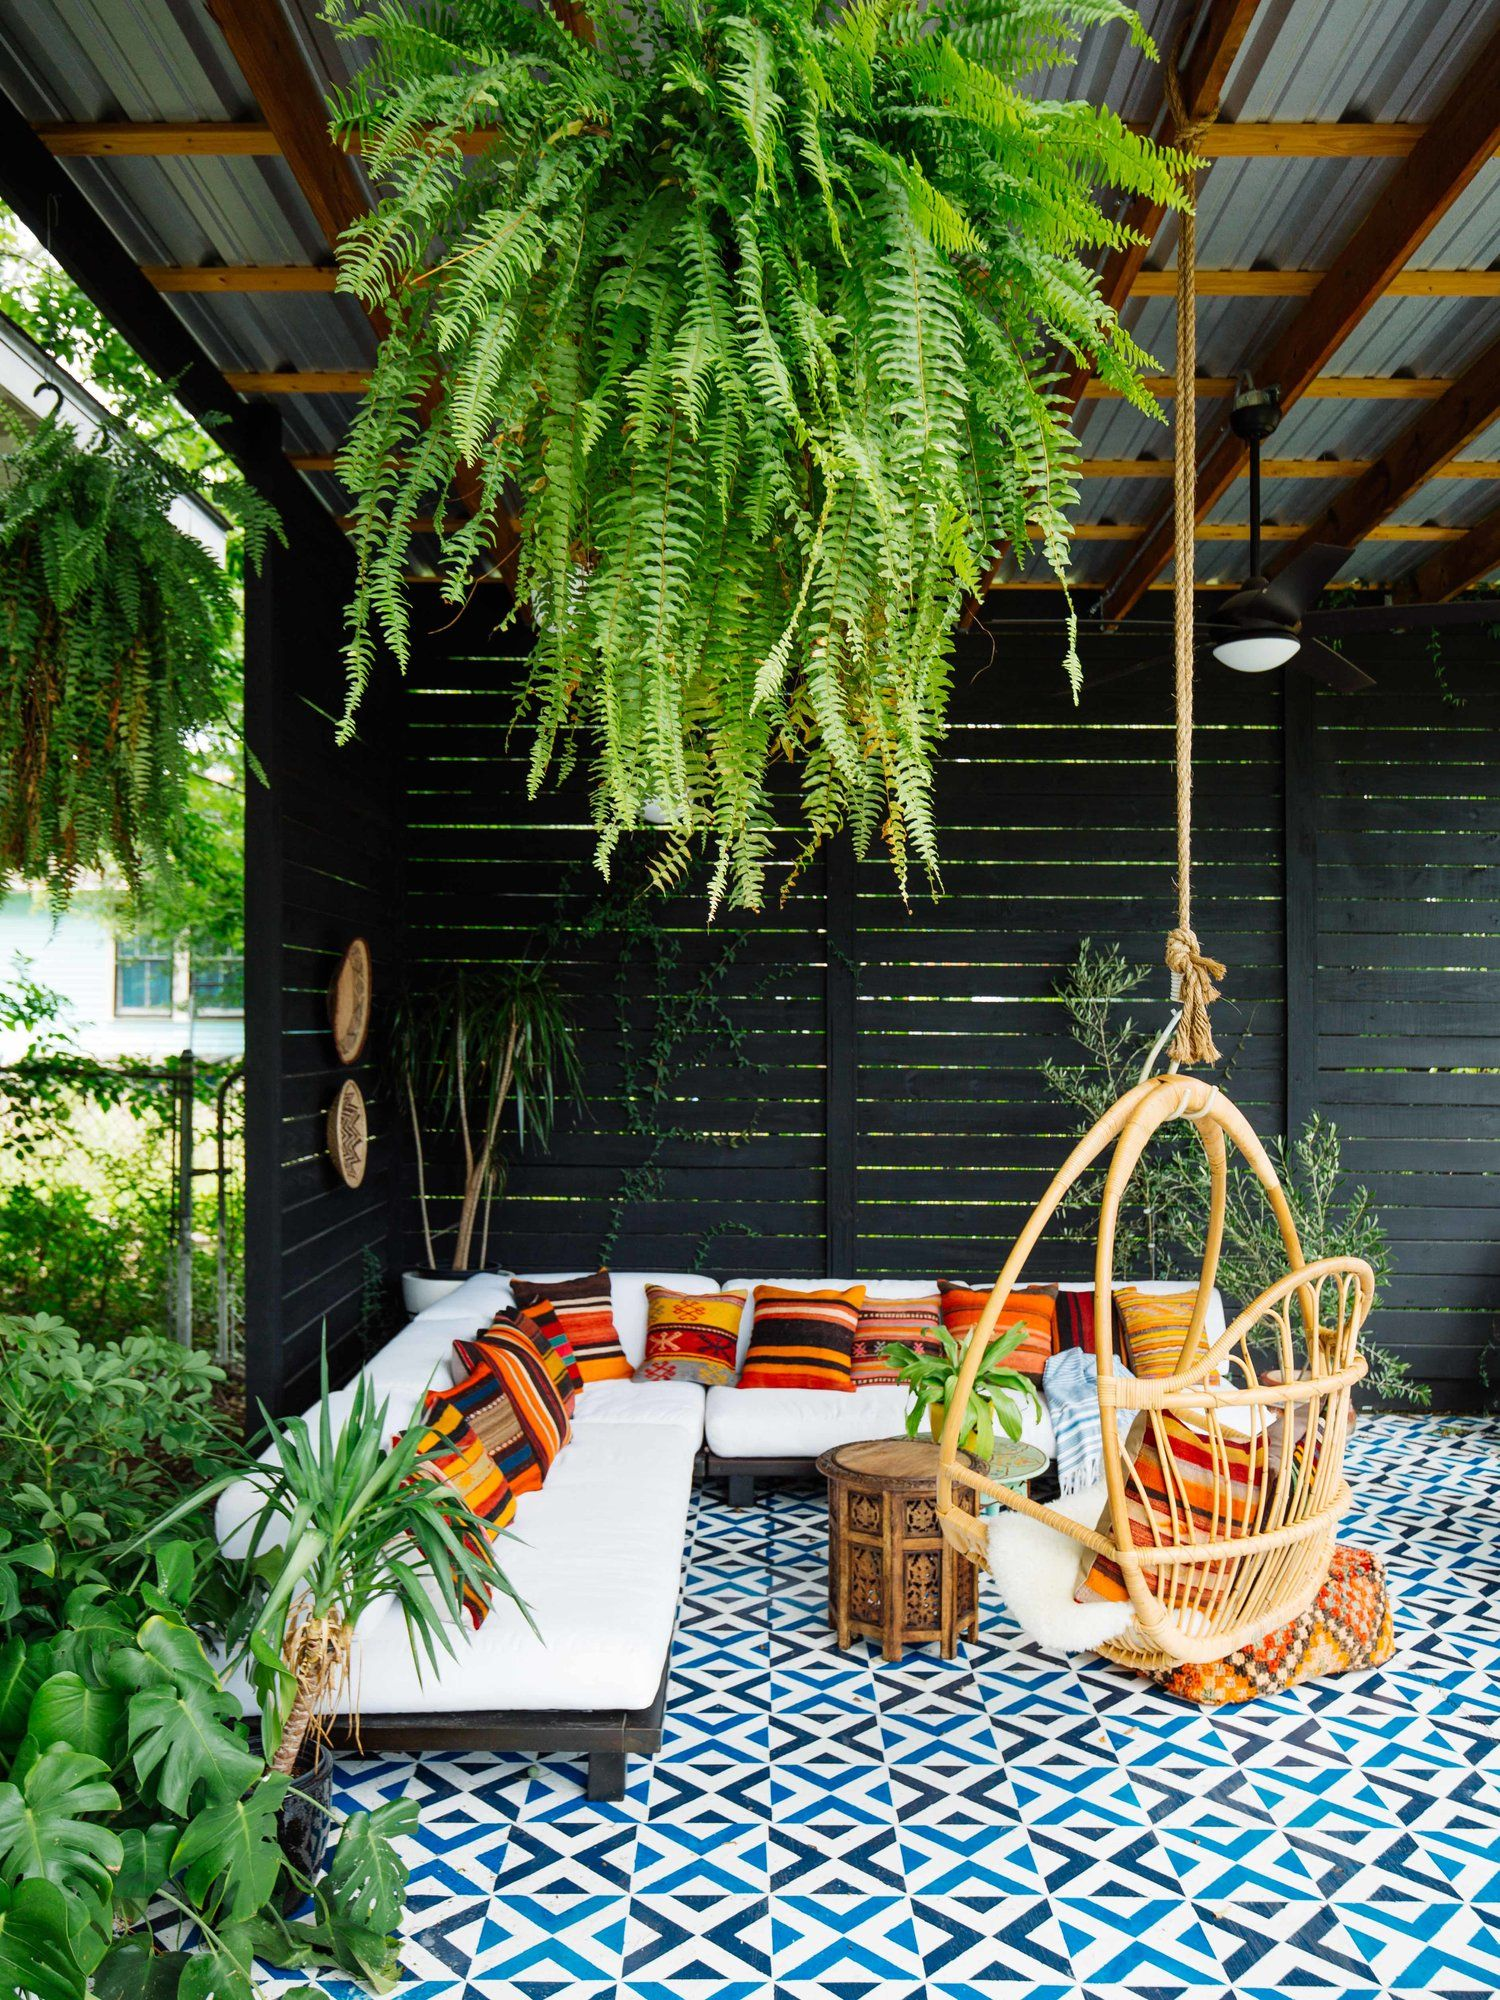 Our crazy colorful new orleans home tour arquitectura for Jardineria al aire libre casa pendiente